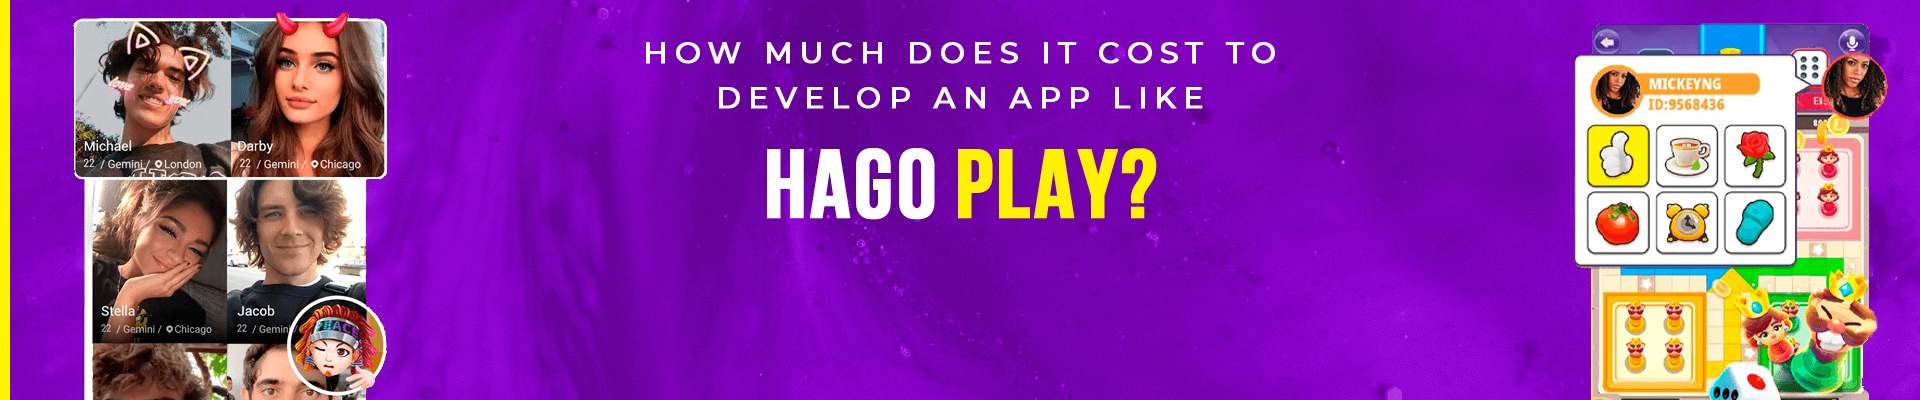 How Much Does It Cost To Develop An App Like Hago Play? [2021]